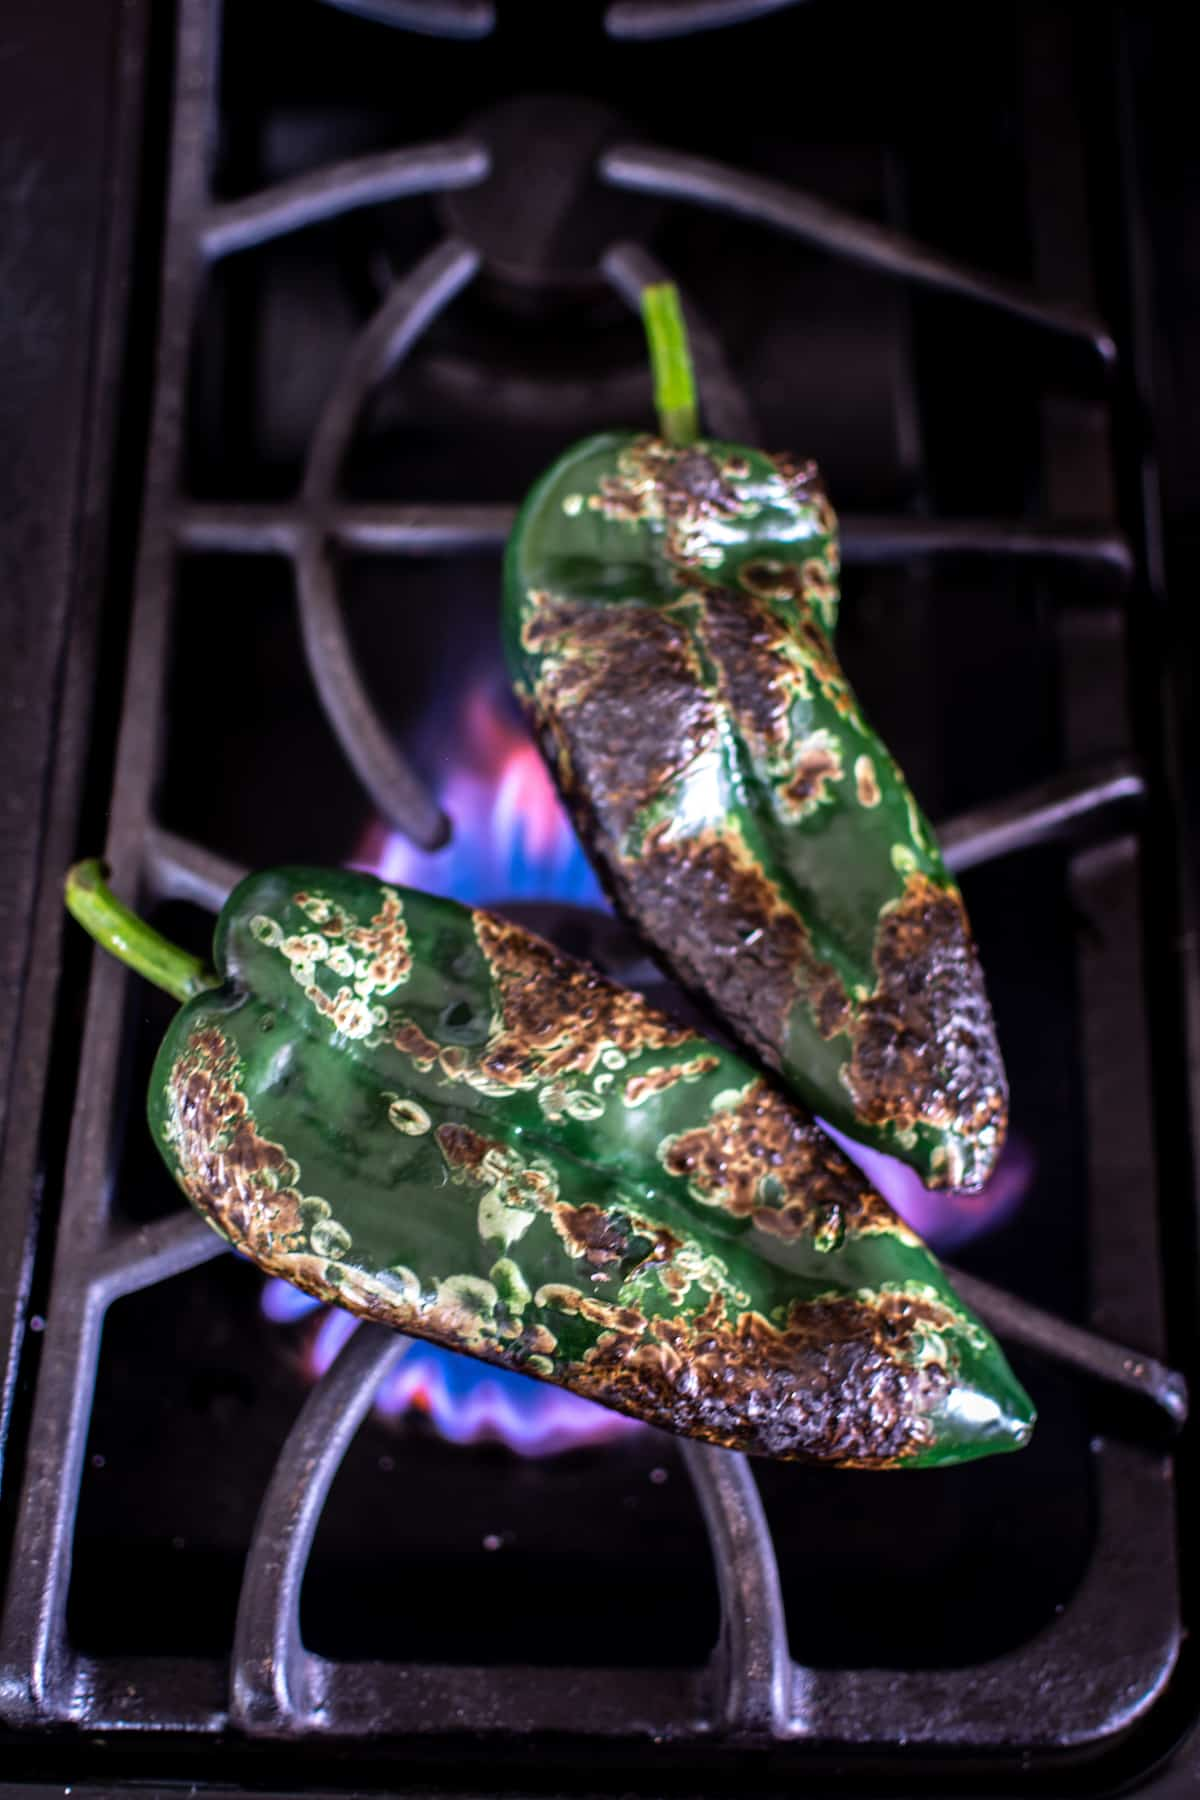 Two poblano peppers roasting over an open flame on the stove top with charred and blackened skin.